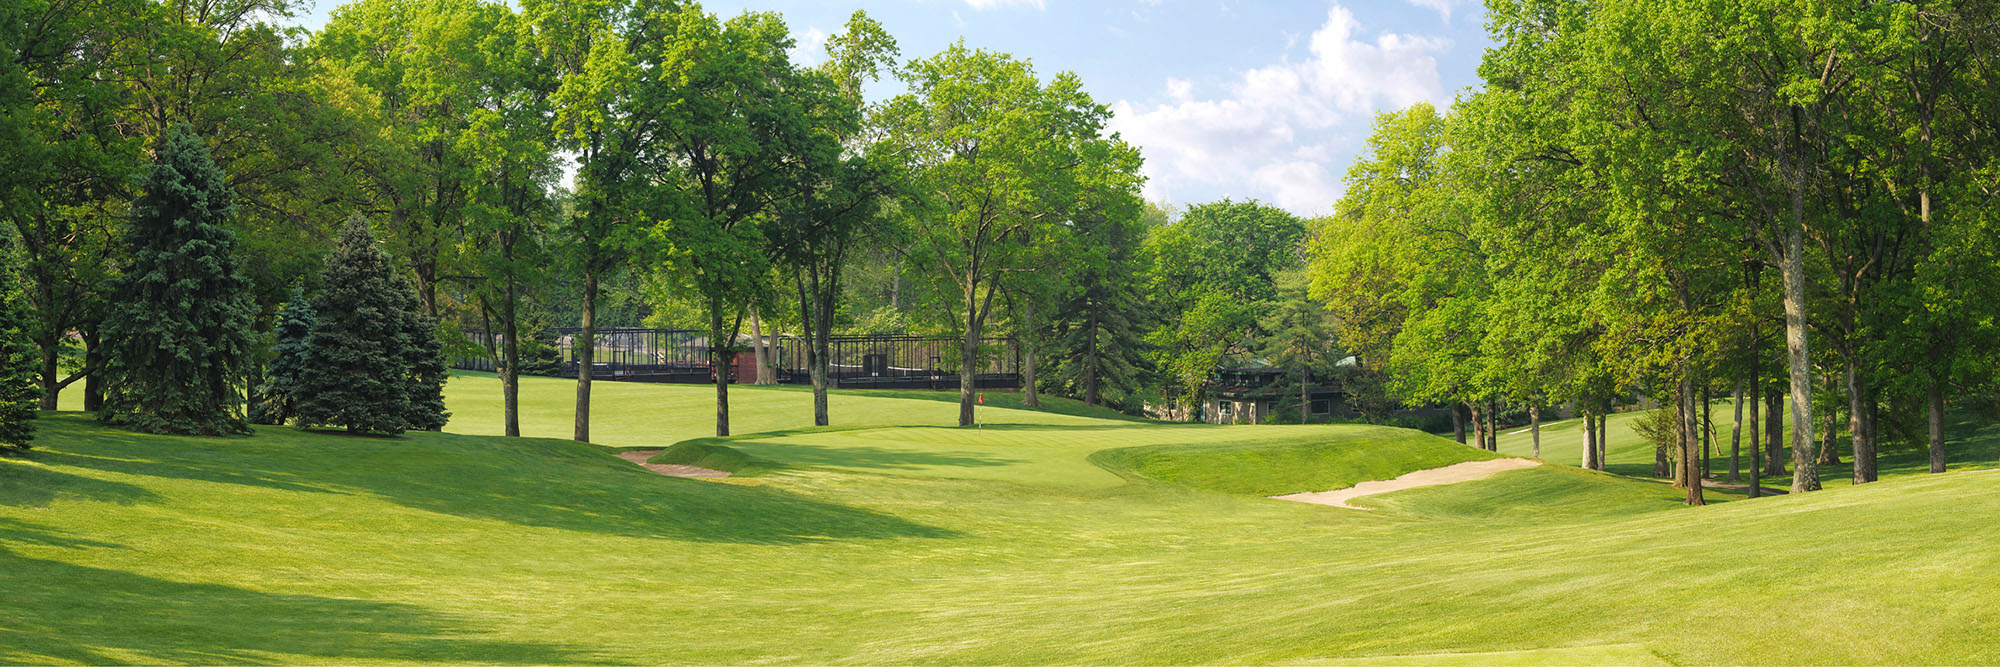 Golf Course Image - St. Louis Country Club No. 16